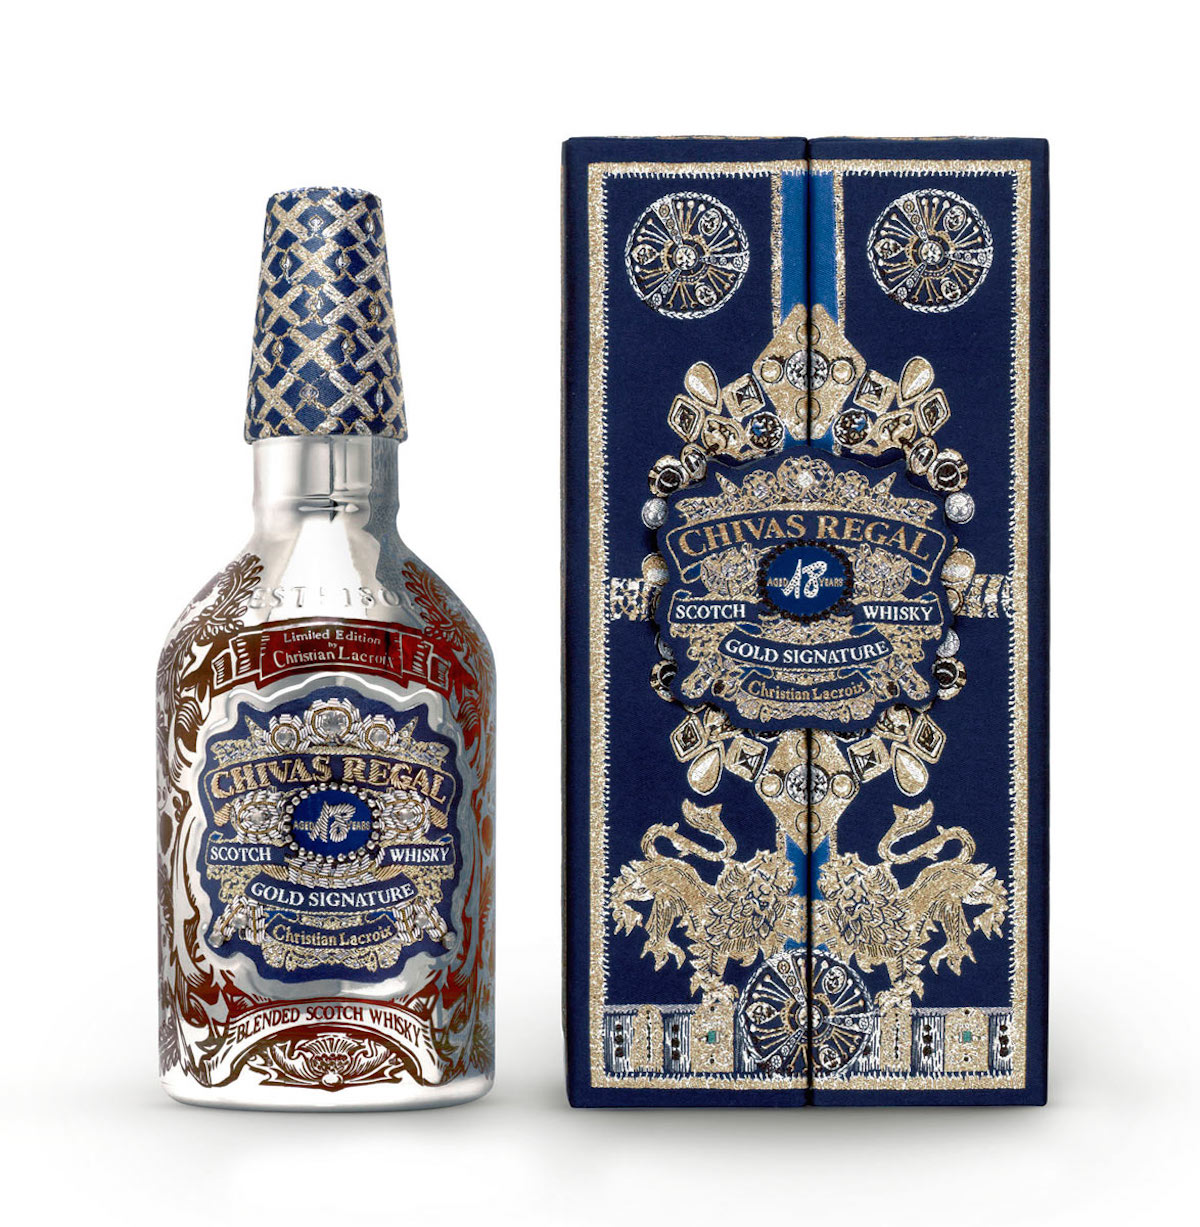 Chivas Regal packaging by Christian Lacroix, 2011